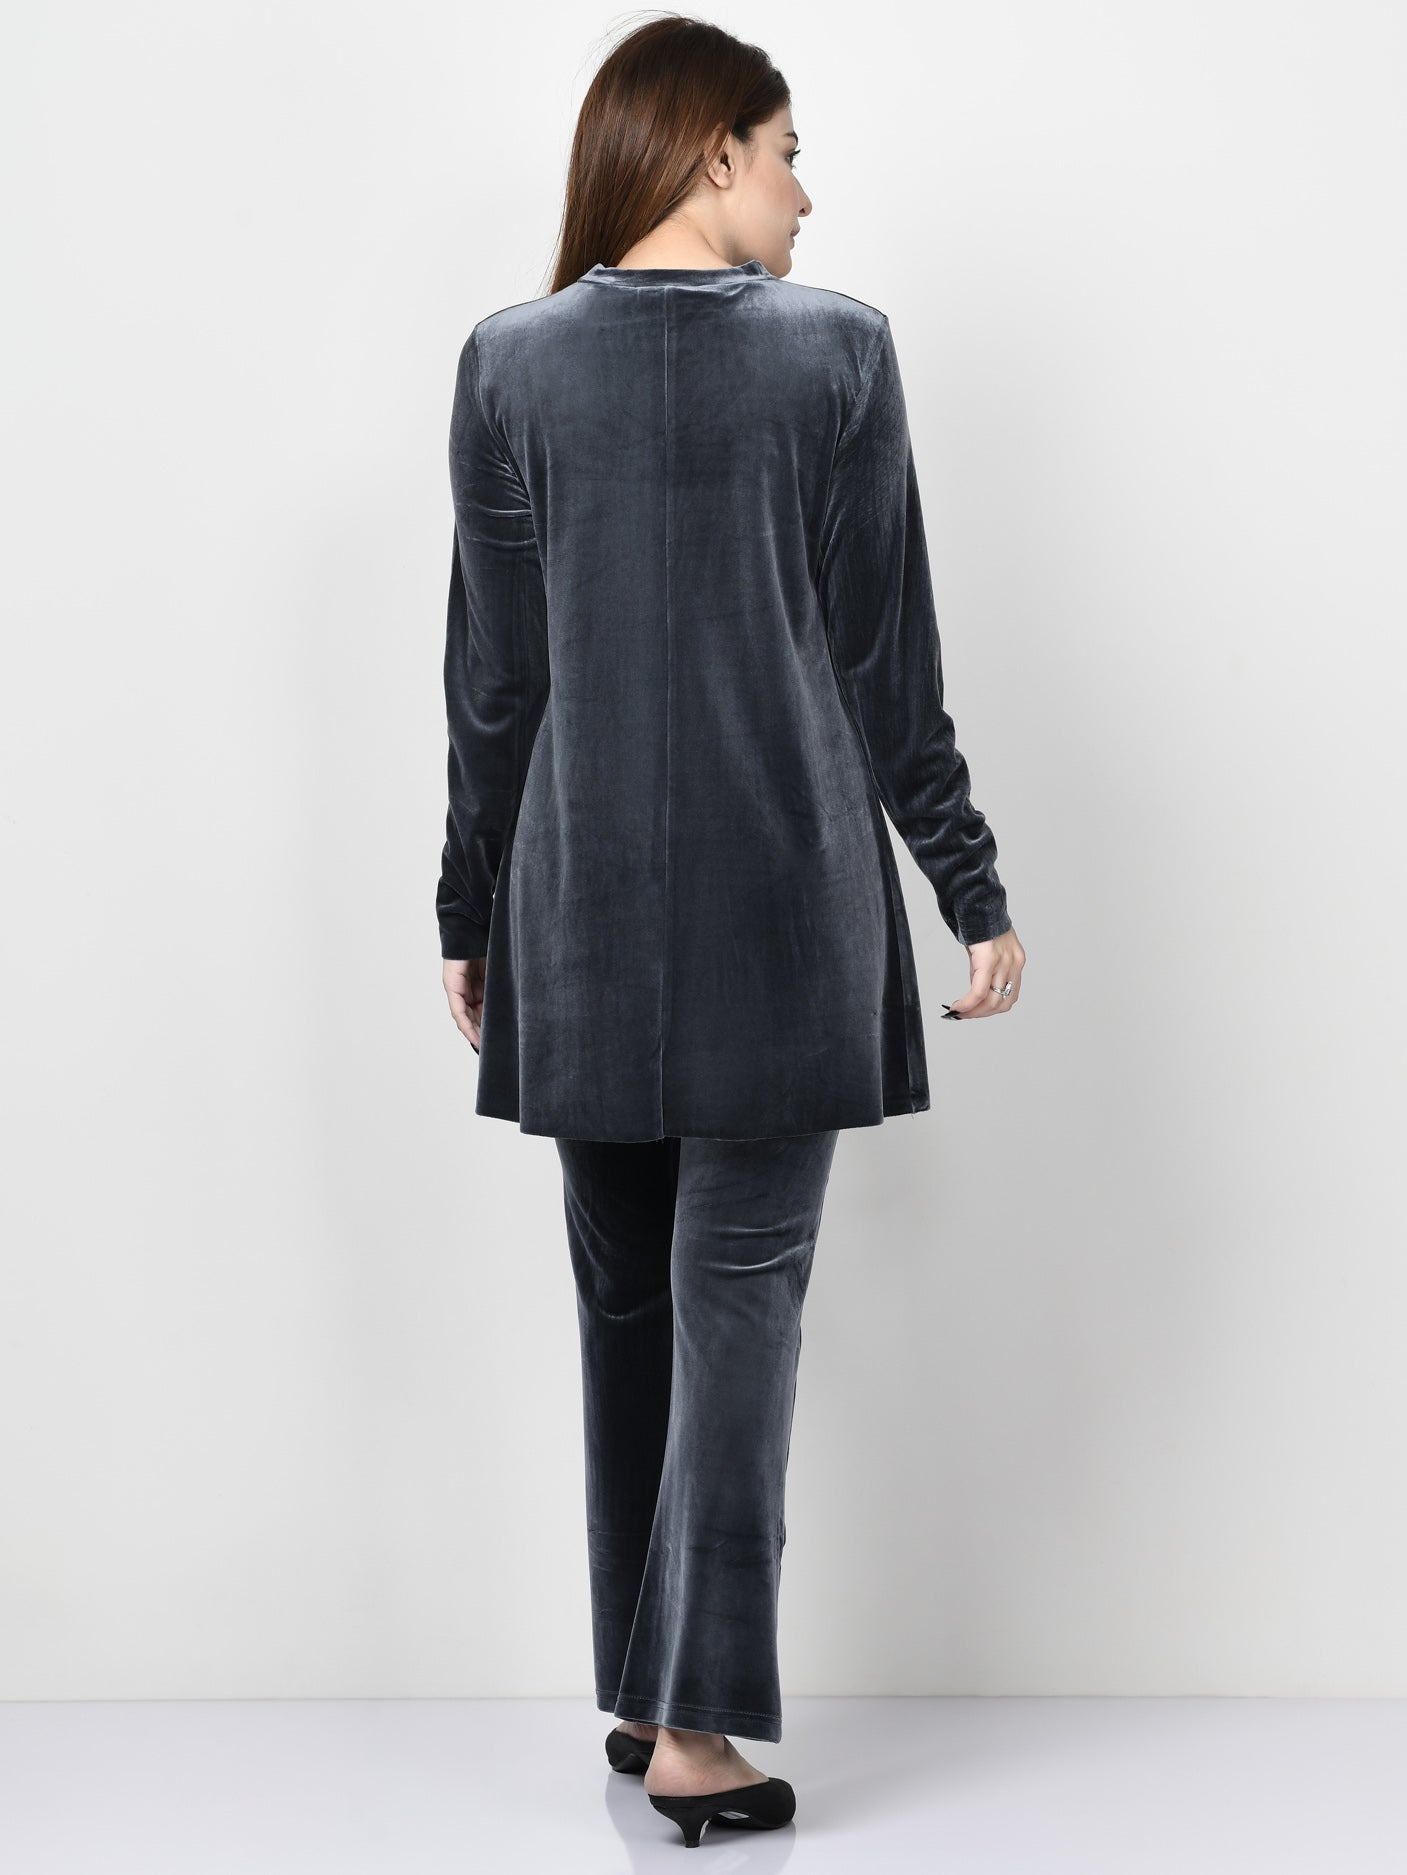 Velvet Shirt - Dark Grey